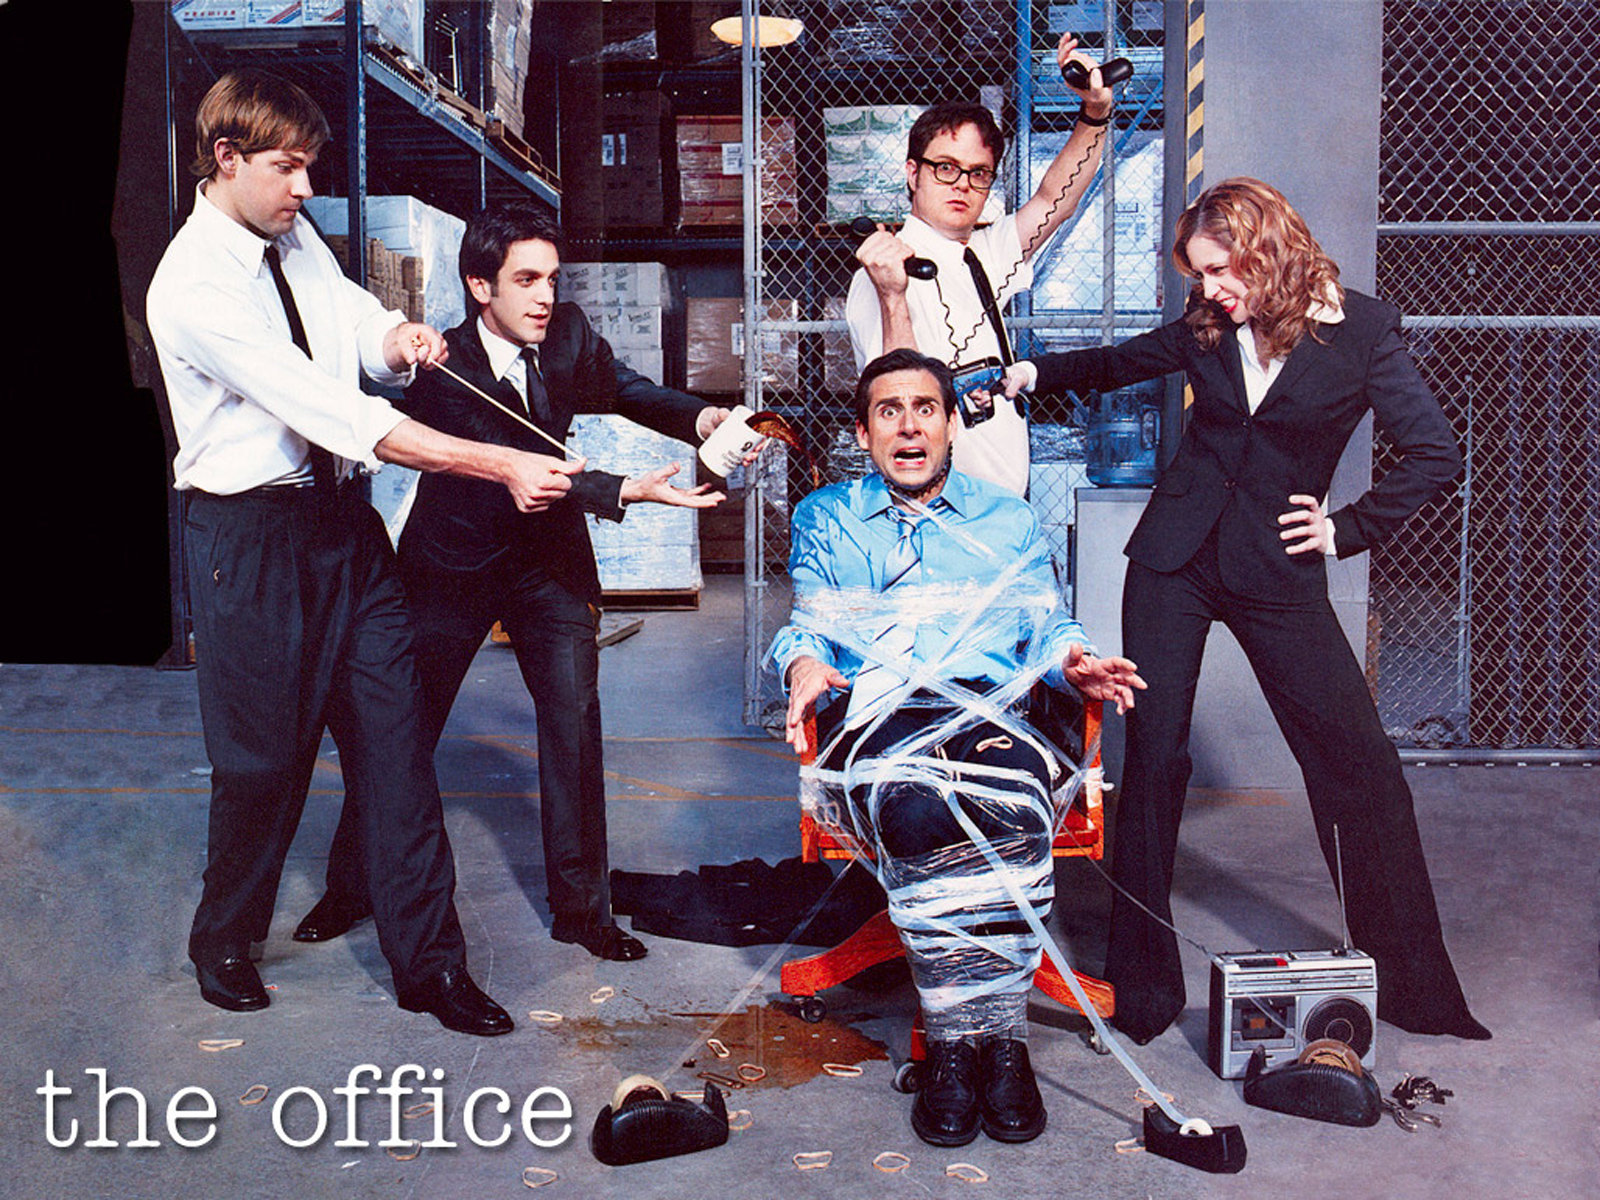 Free The Office Us High Quality Wallpaper Id 46008 For Hd 1600x1200 Computer